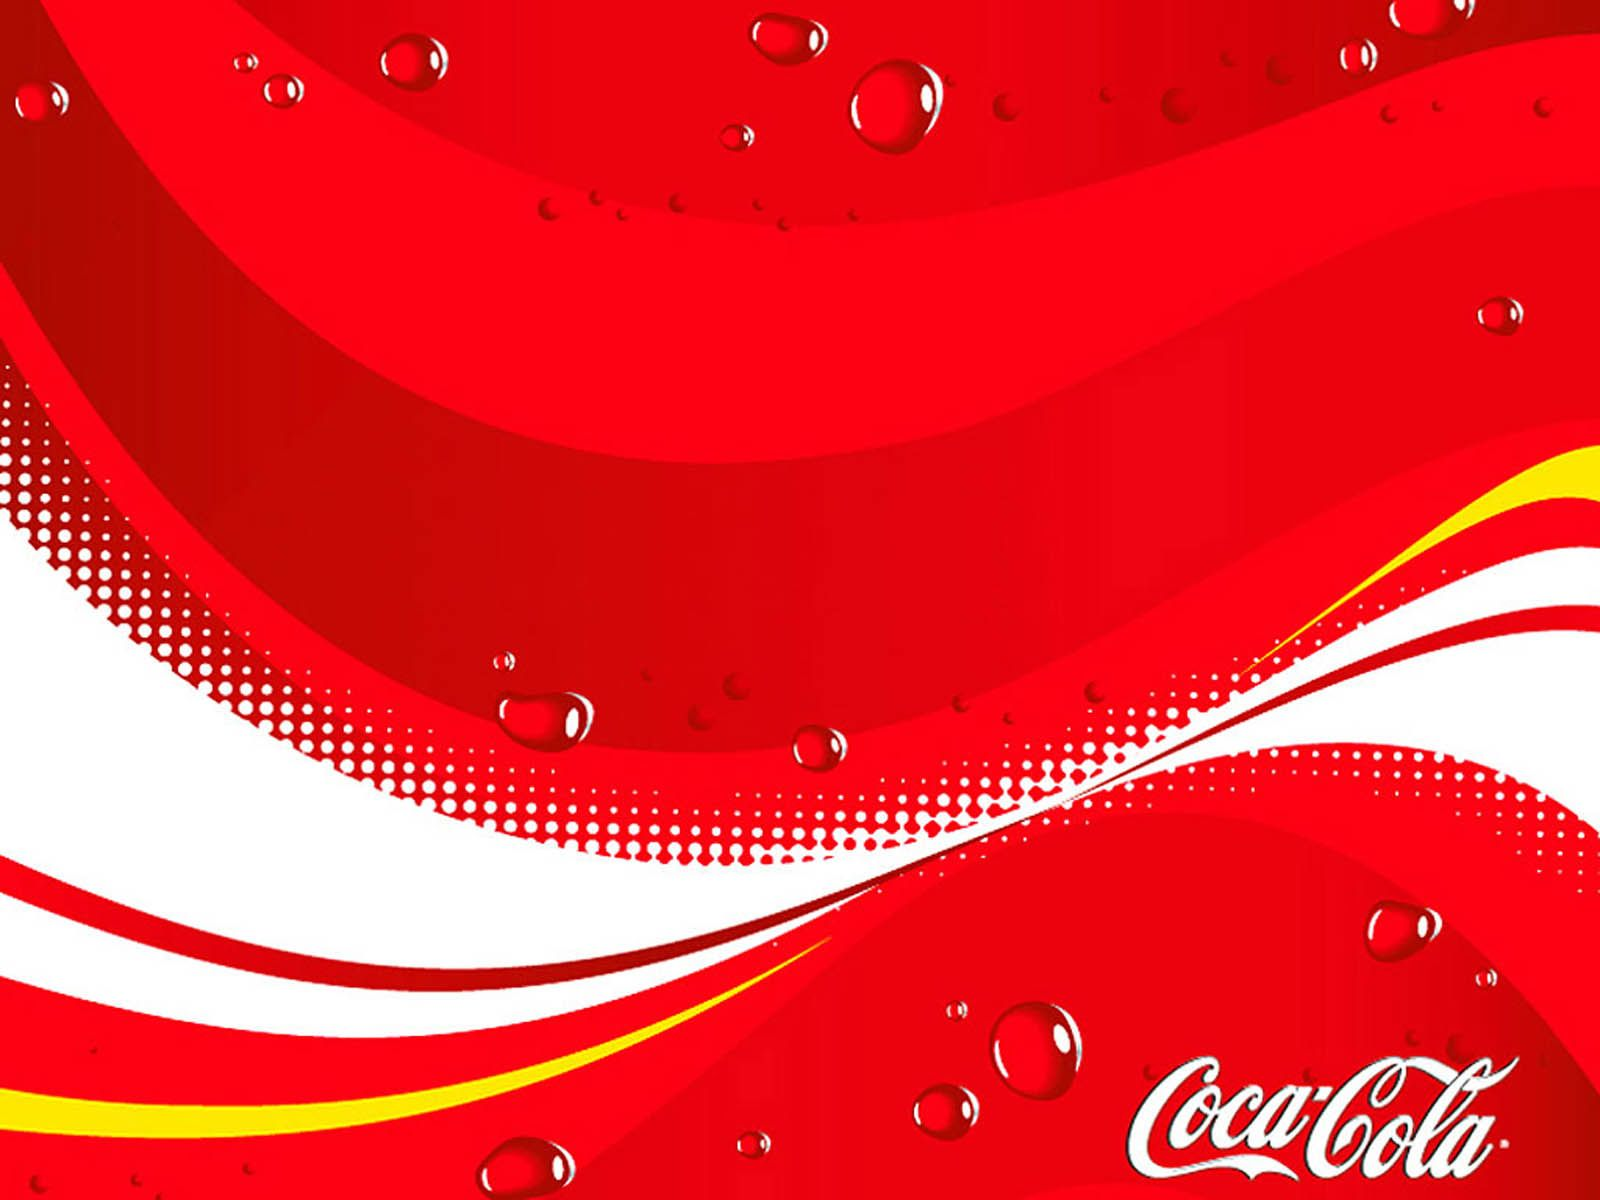 Coca-Cola Screensavers